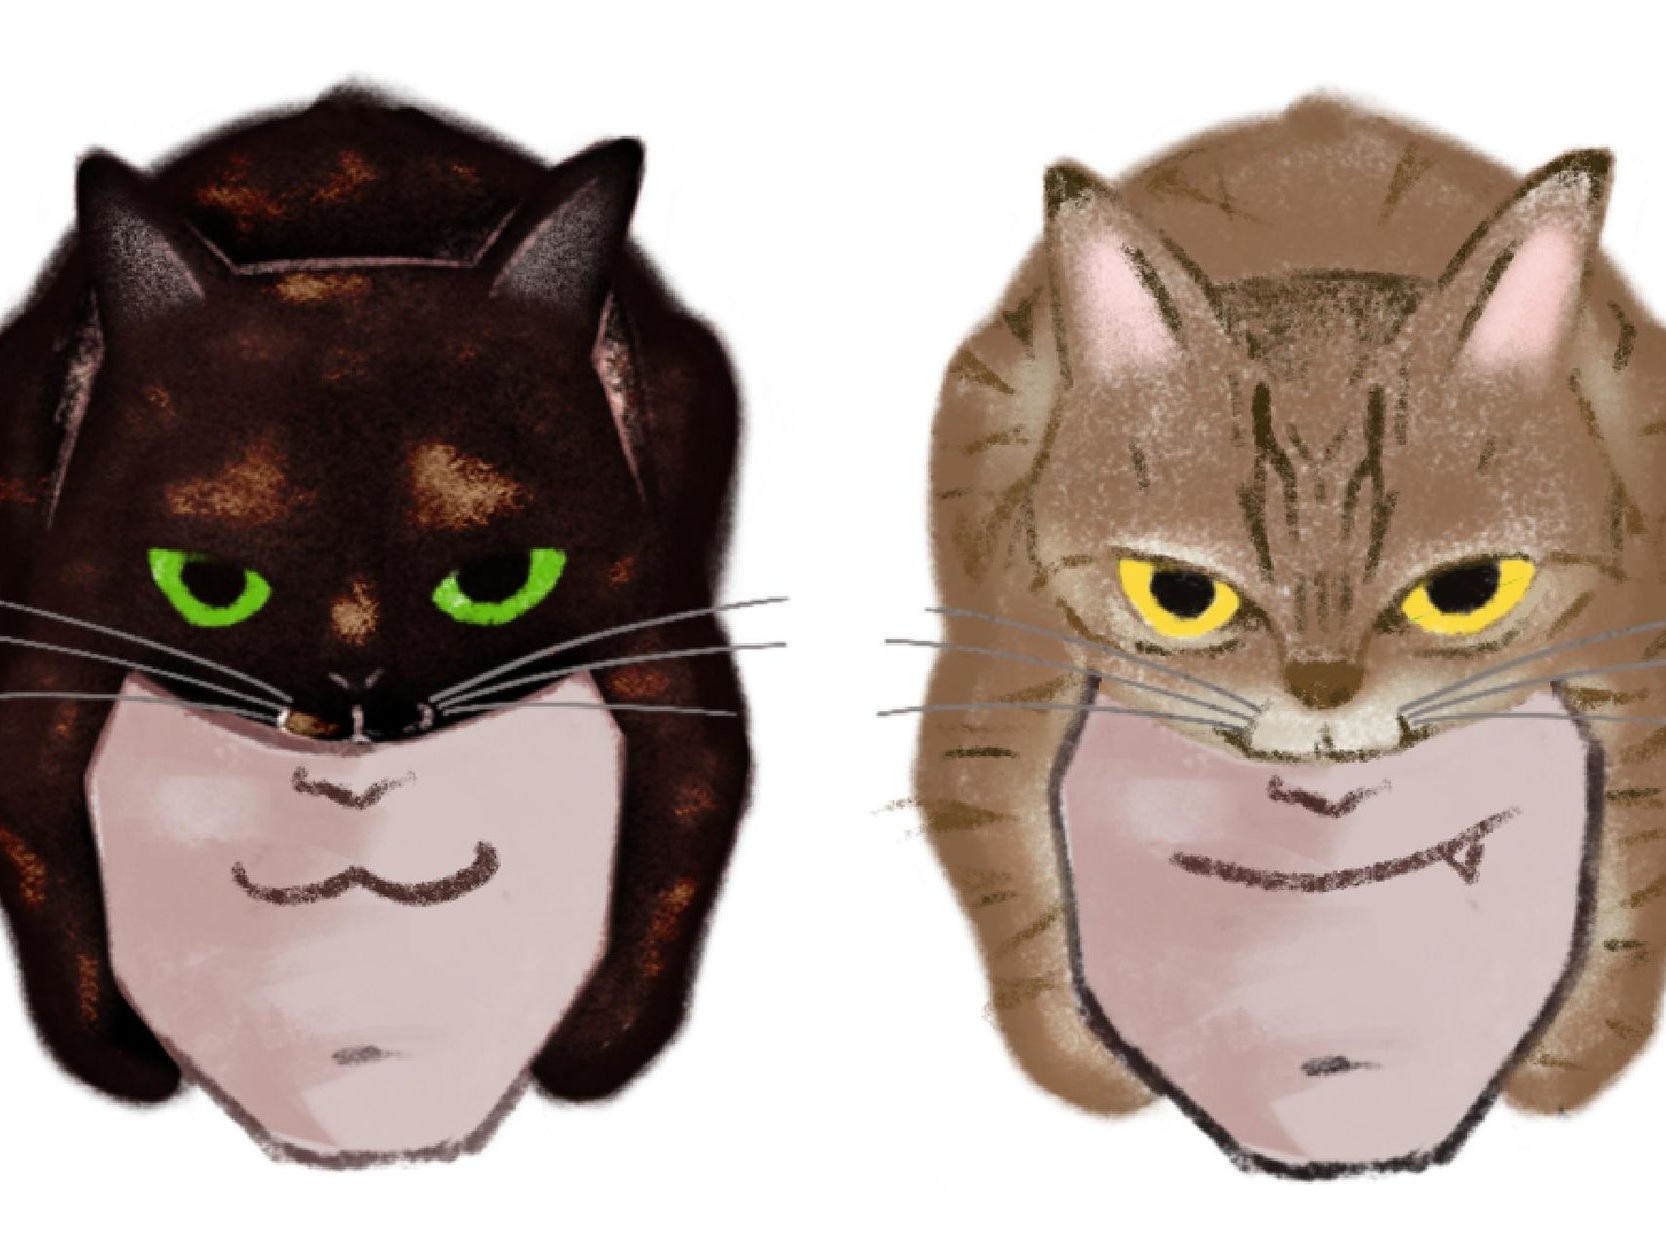 Melvin's illustration of the BetaBeta duo with their respective cats on their heads